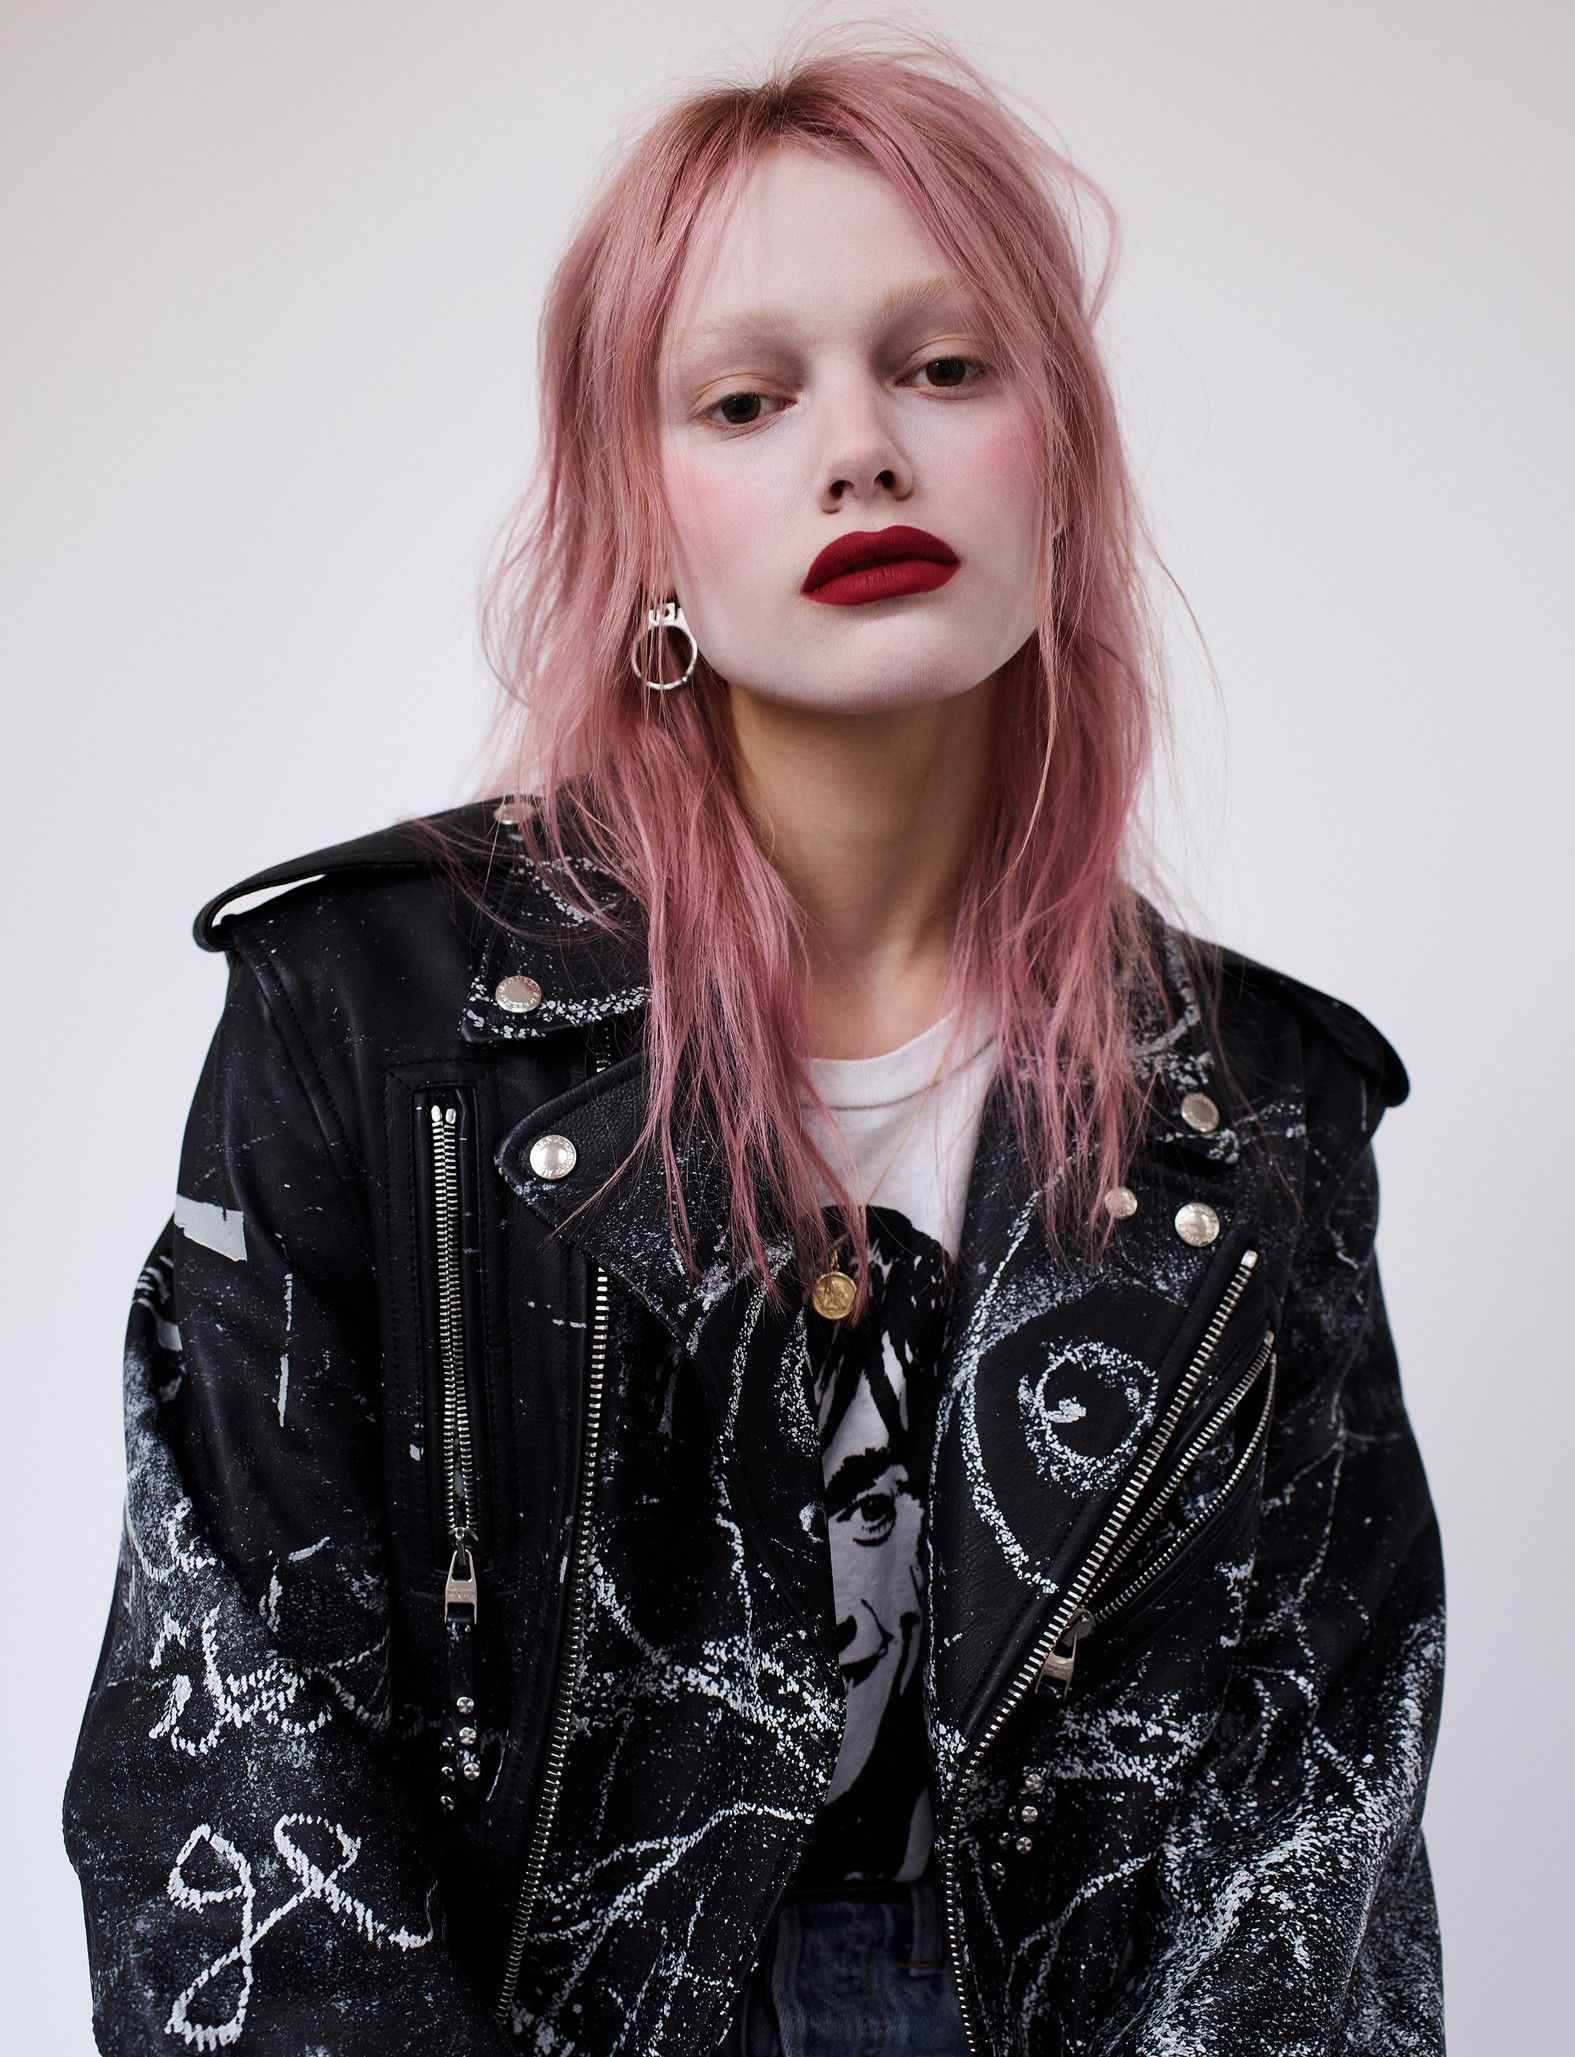 Simona Kust The Russian Pink Haired Saint Laurent Exclusive Fashion Pink Hair Model